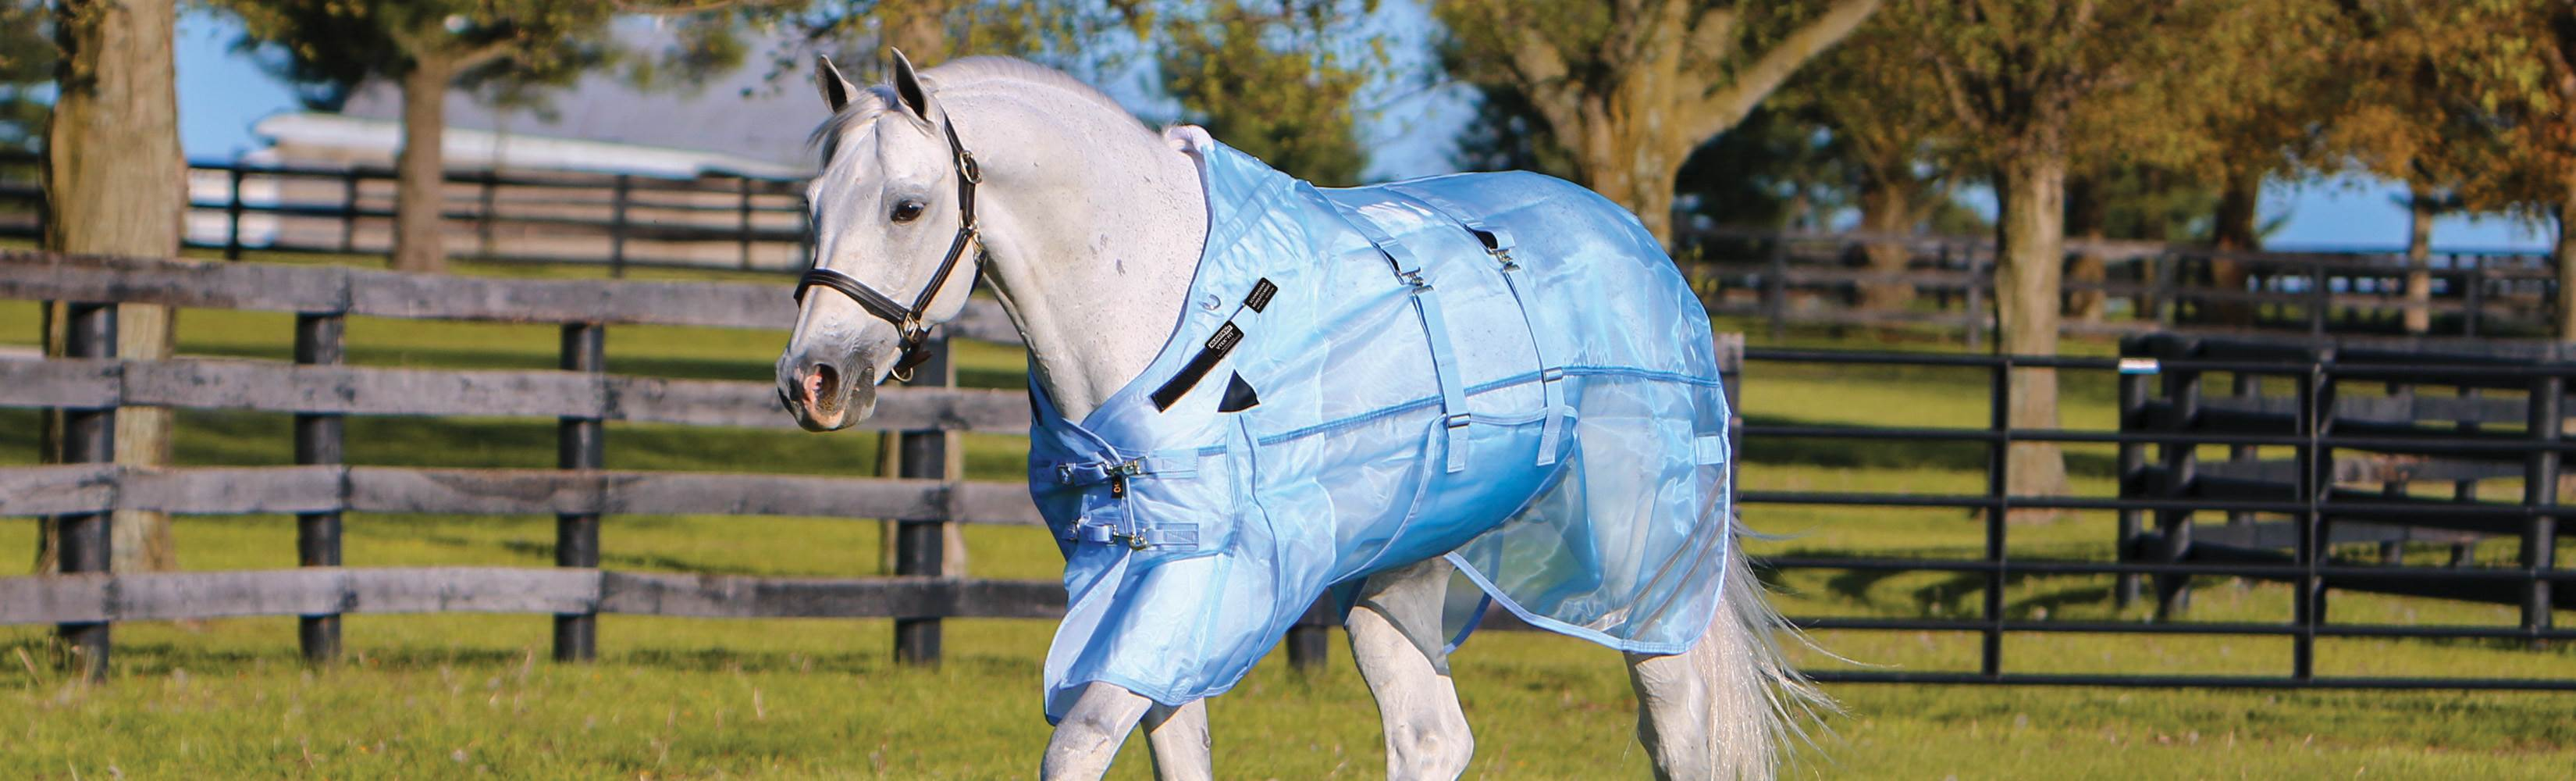 Can My Horse Wear a Fly Sheet in the Summer - How Hot is Too Hot for a Fly Sheet?